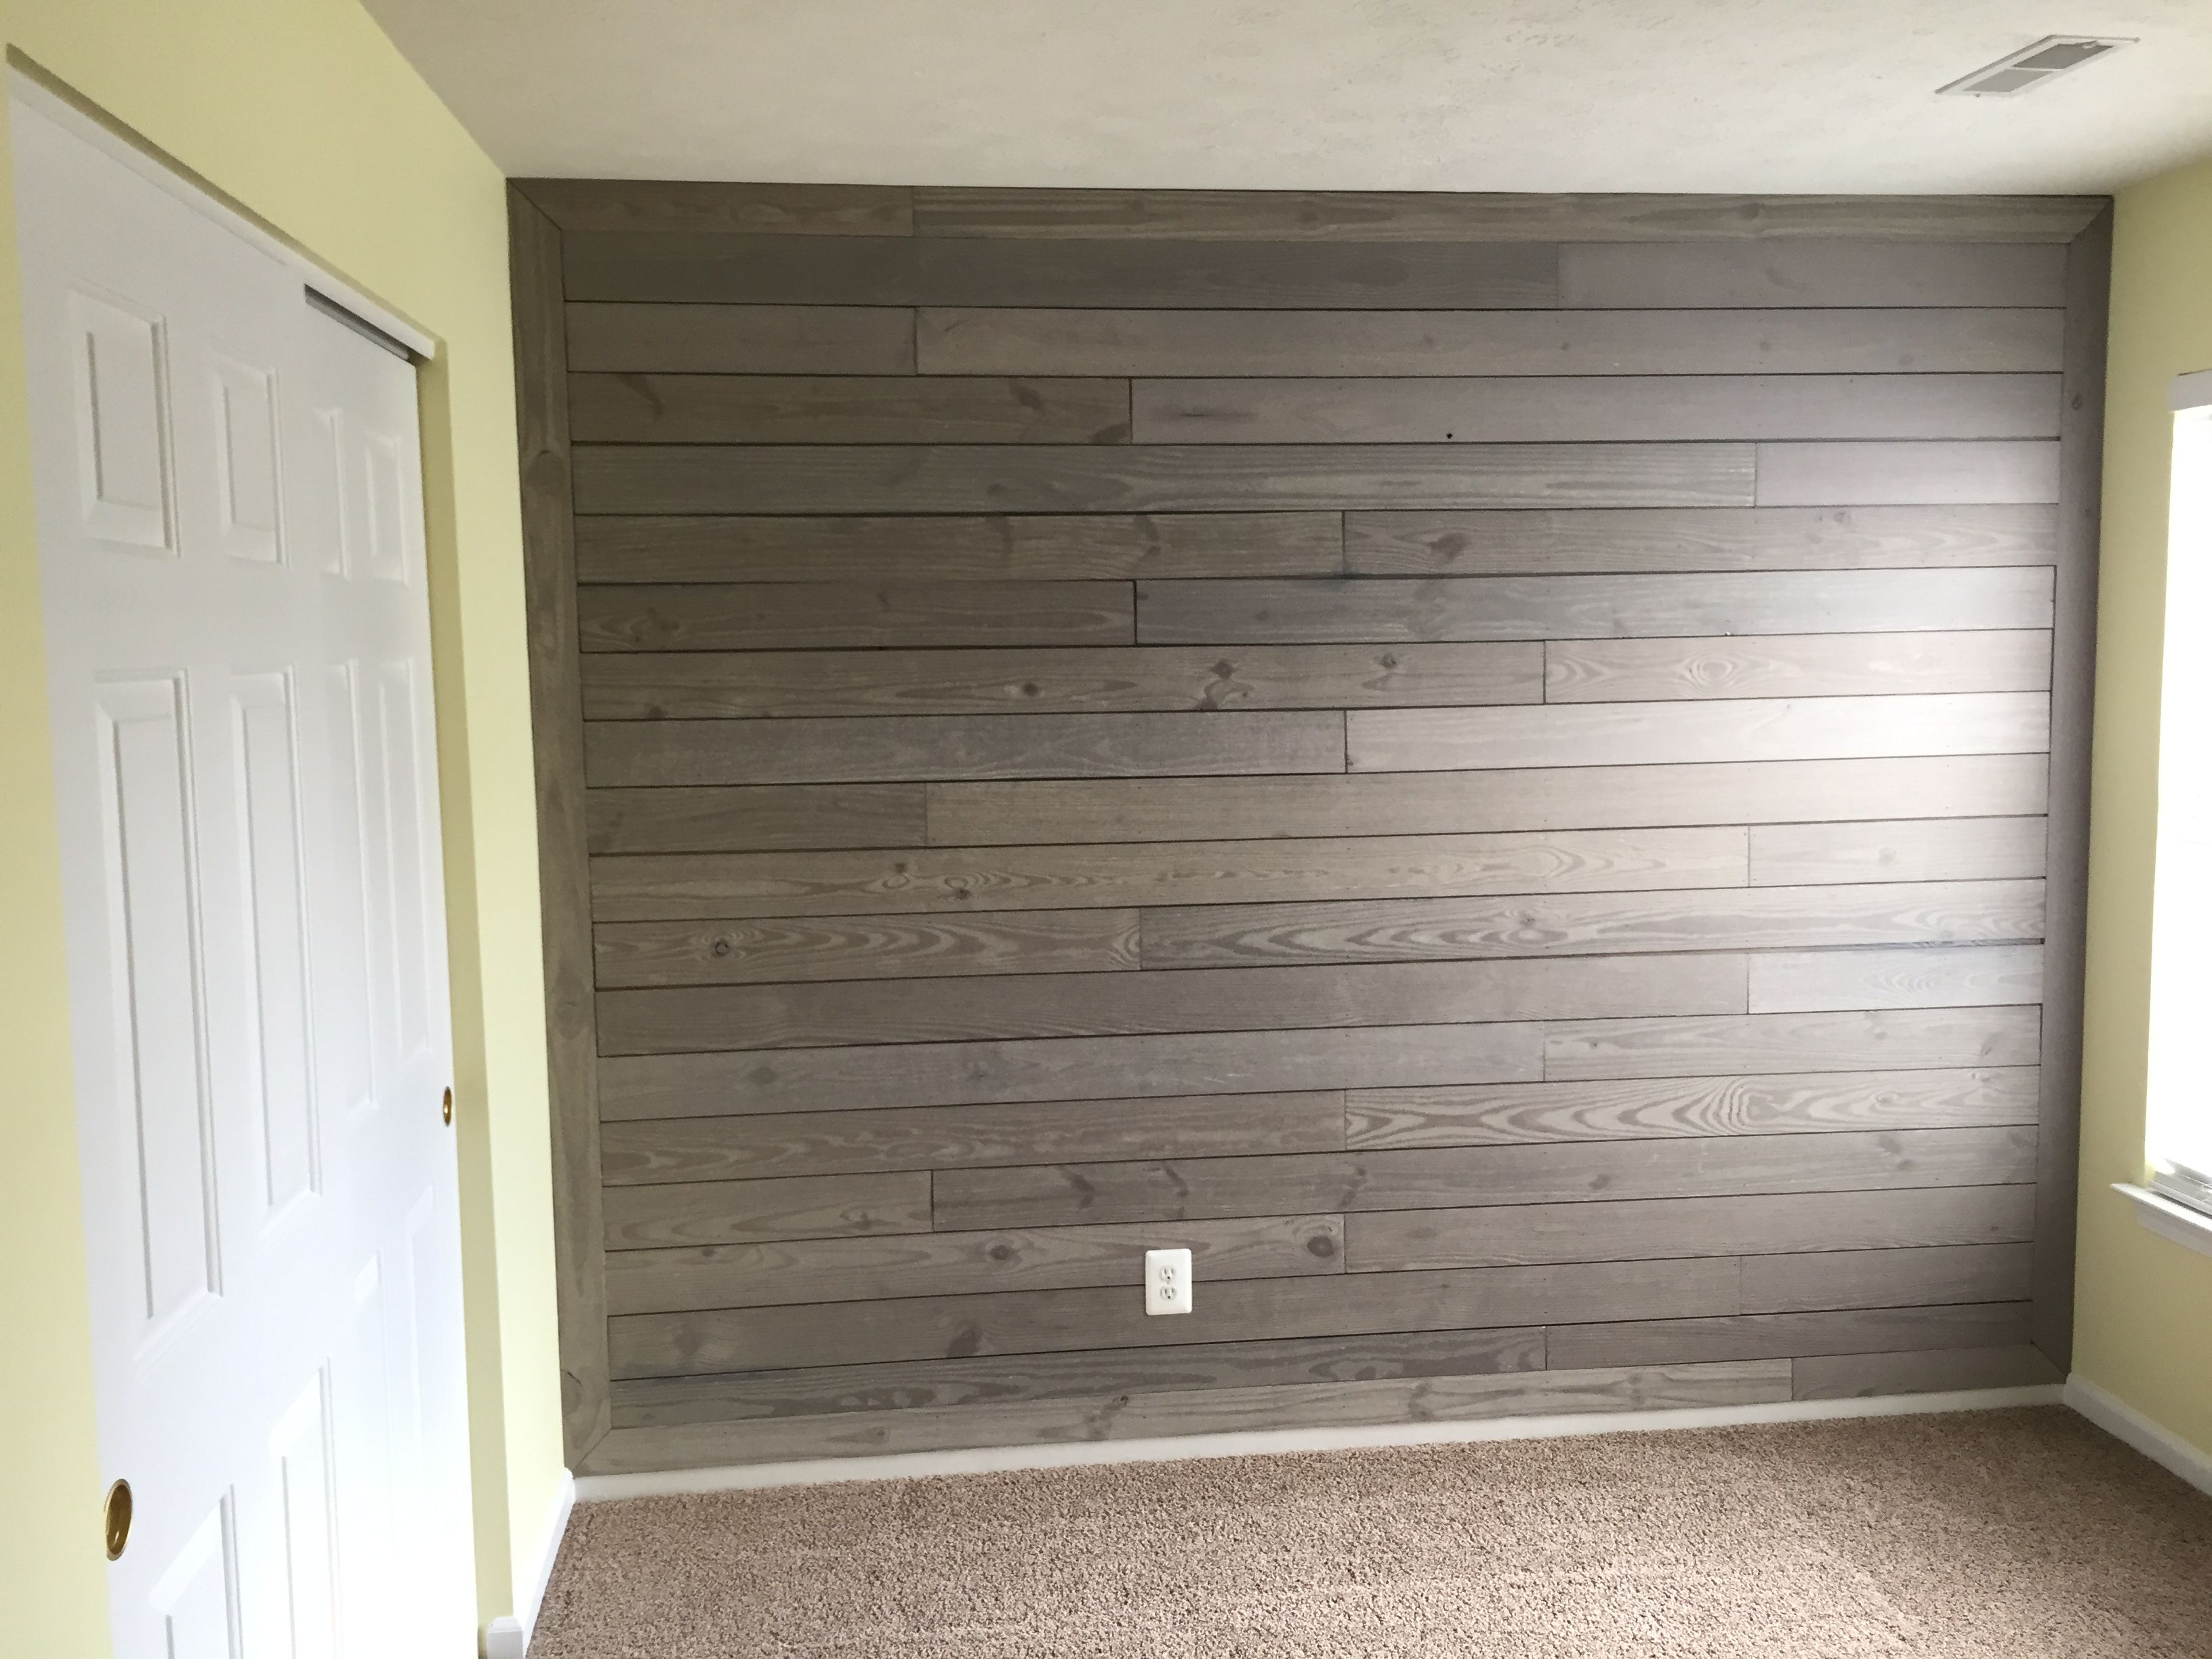 Rustic Silo Pine Wall Plank From Lowes Easy To Install But Many Pieces Are Warped So Be Careful When Picking Out Your Interior Remodel Pine Walls Wall Planks